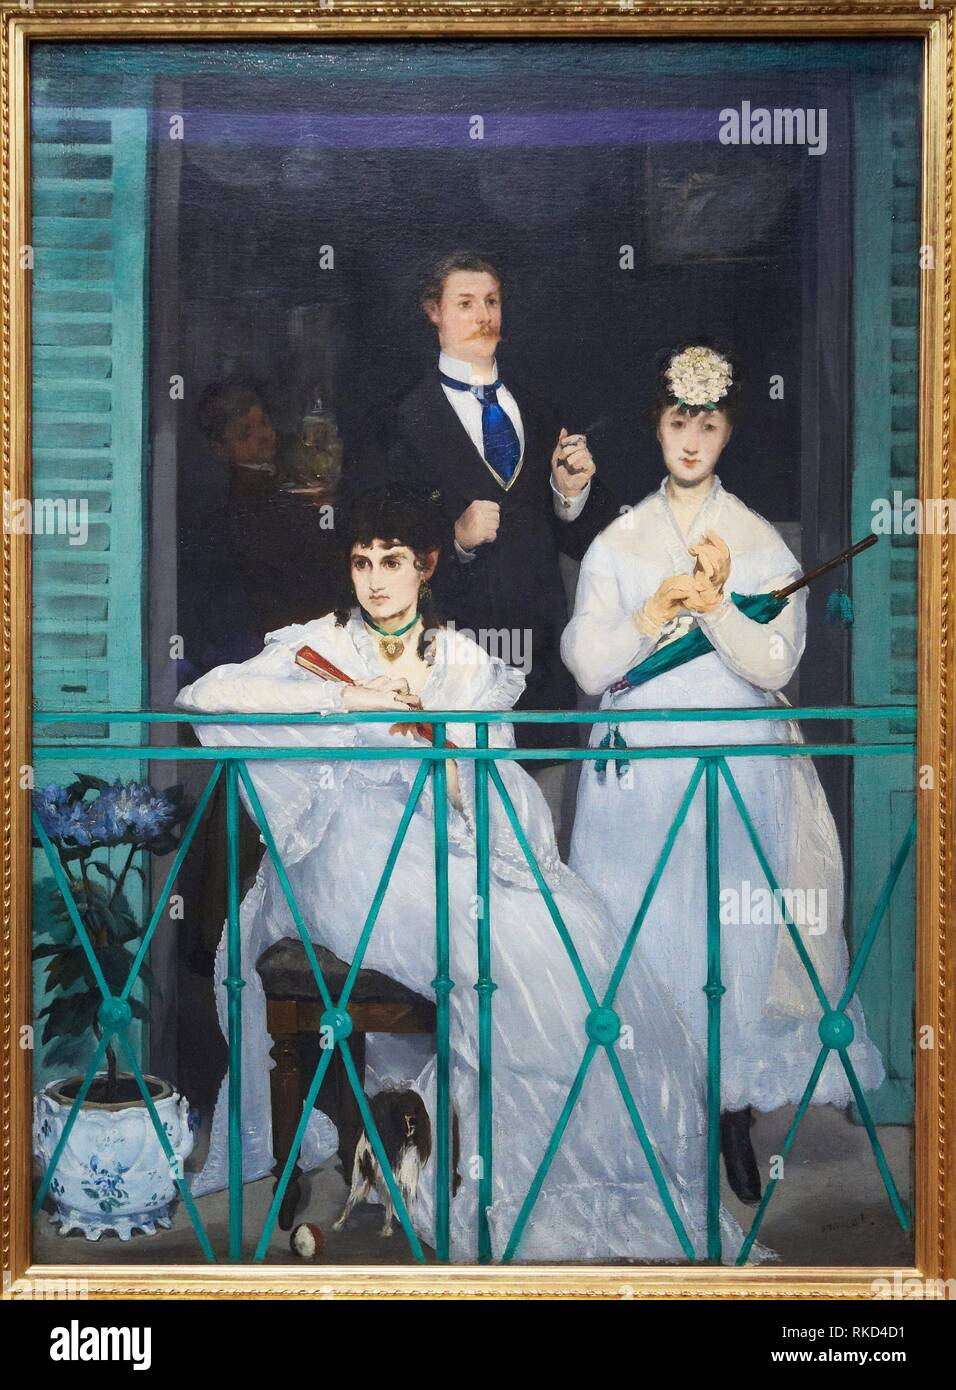 'The Balcony' 1868. Edouard Manet. 1832 - 1883. Berthe Morisot, the violinist Fanny Claus, and behind the women is the painter Antonin Guillemet. - Stock Image